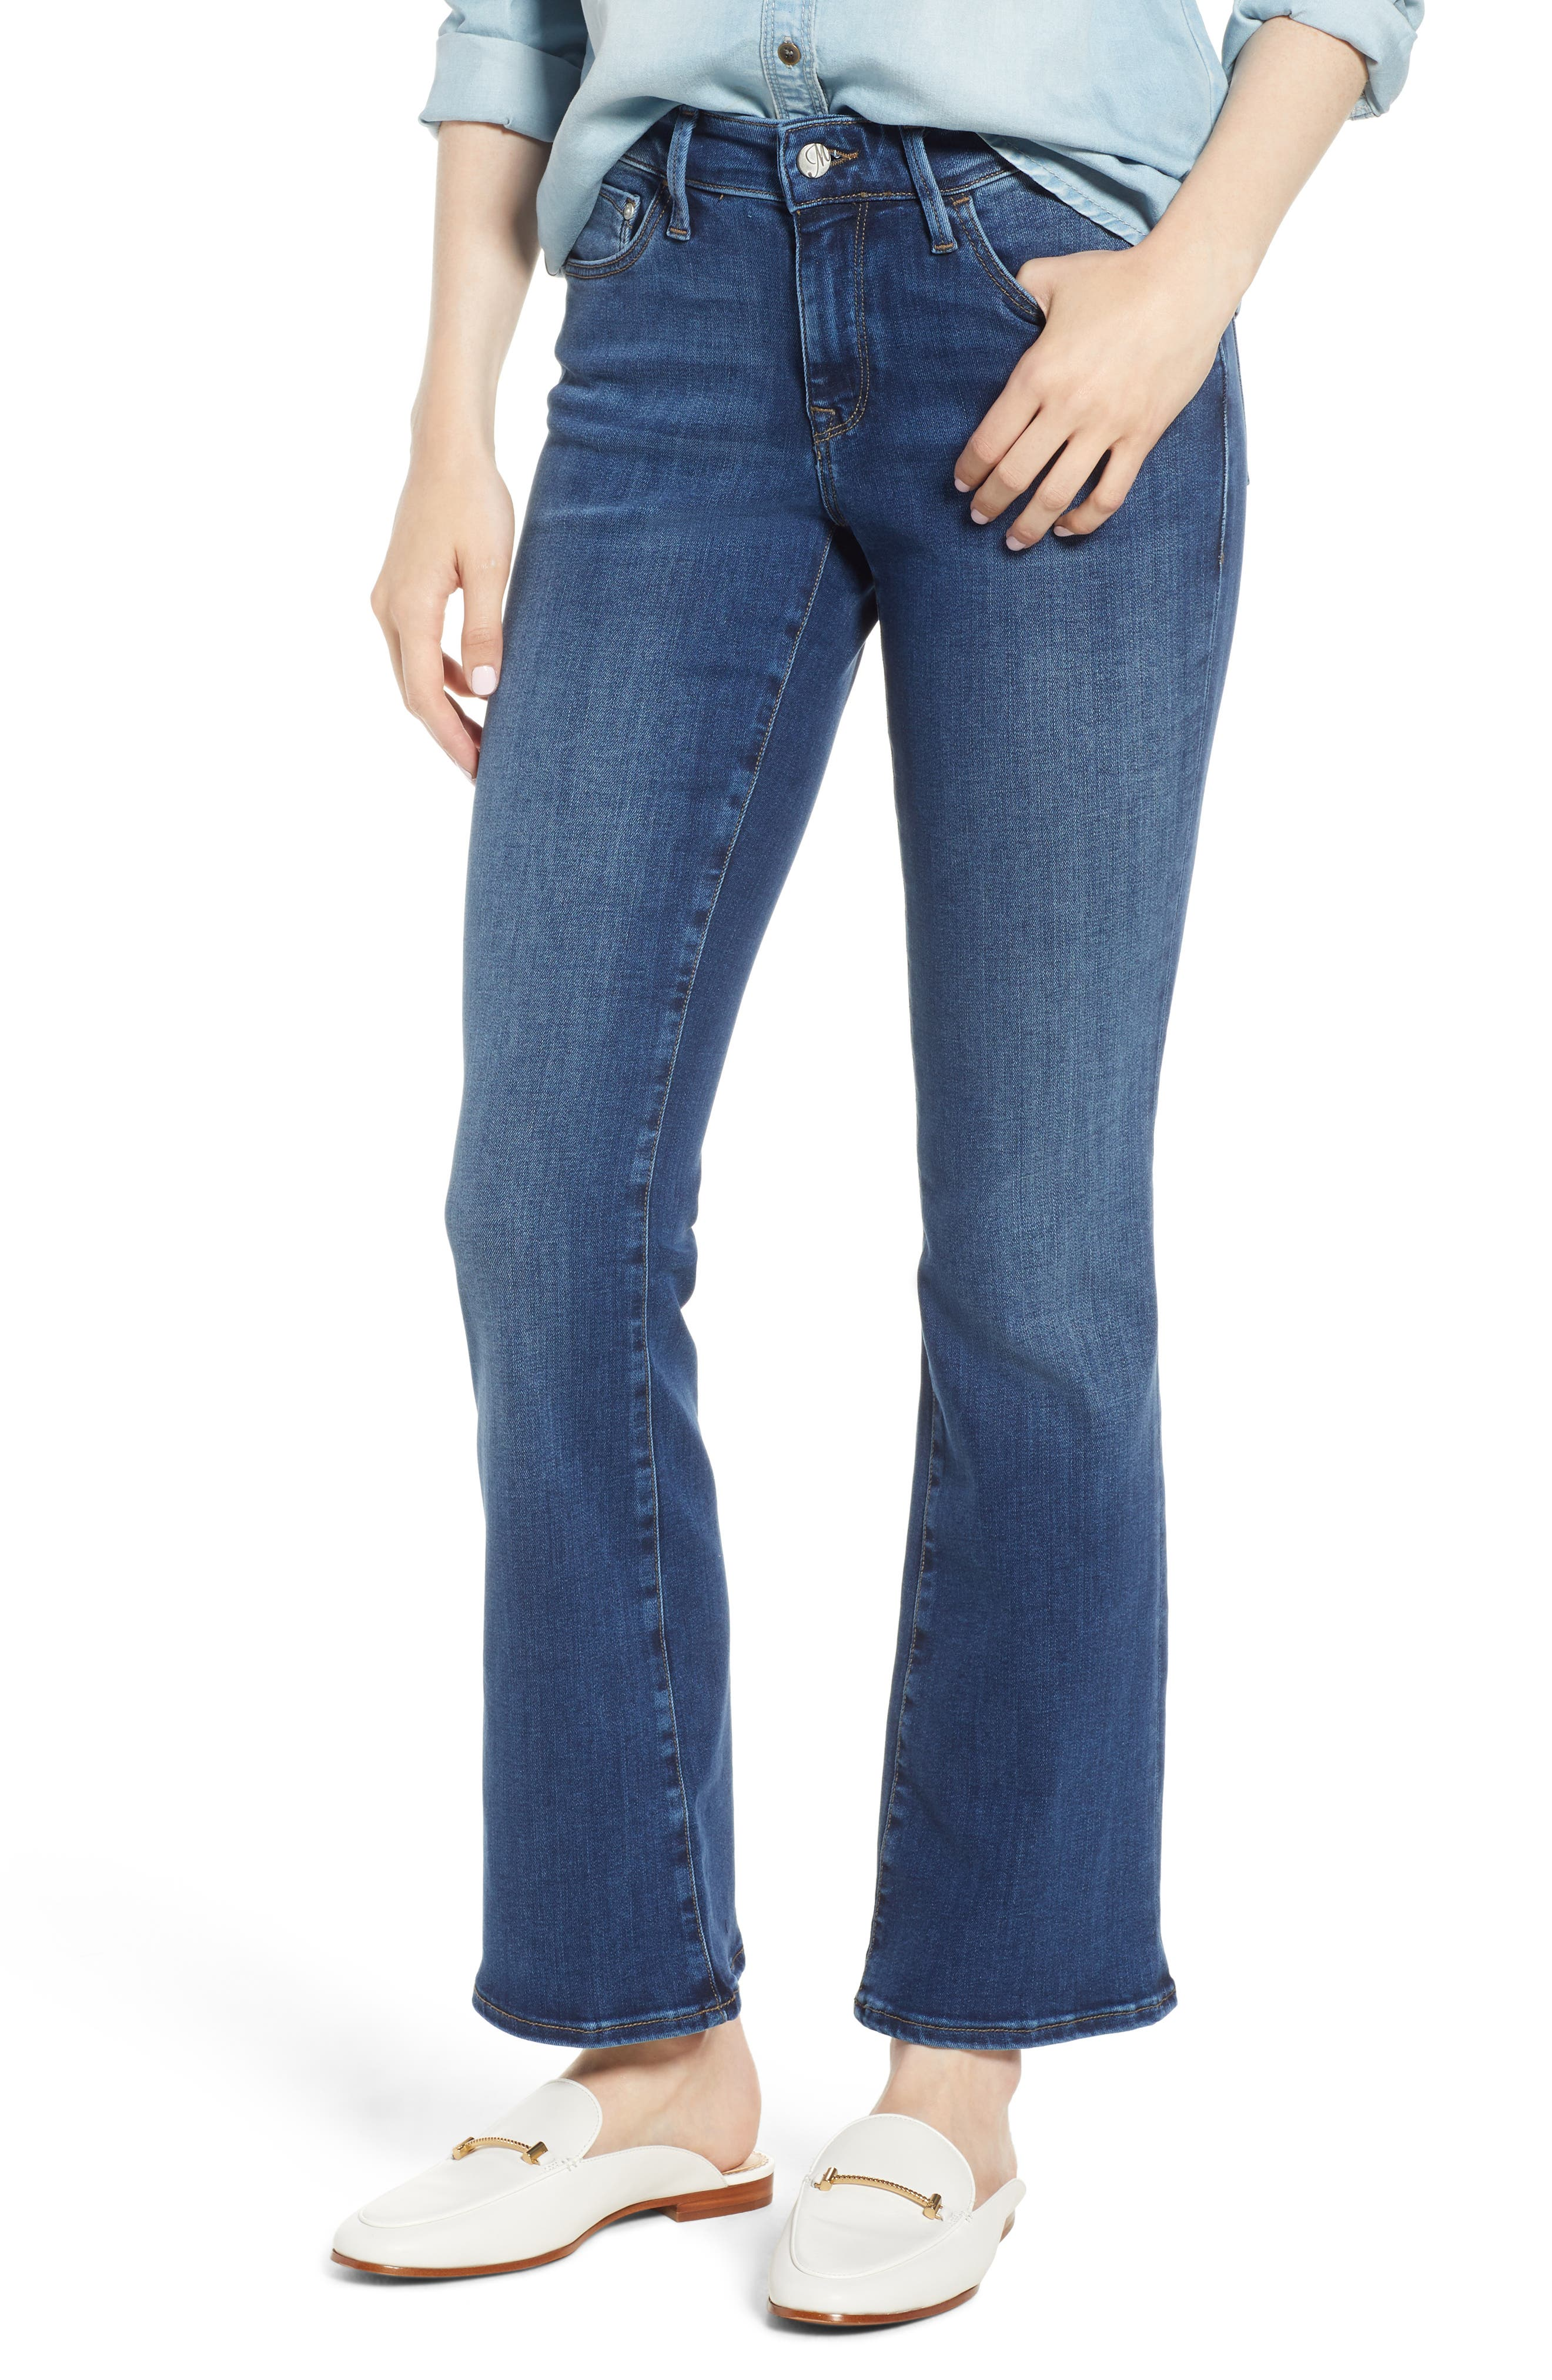 Molly Classic Bootcut Jeans,                             Main thumbnail 1, color,                             INDIGO SUPERSOFT